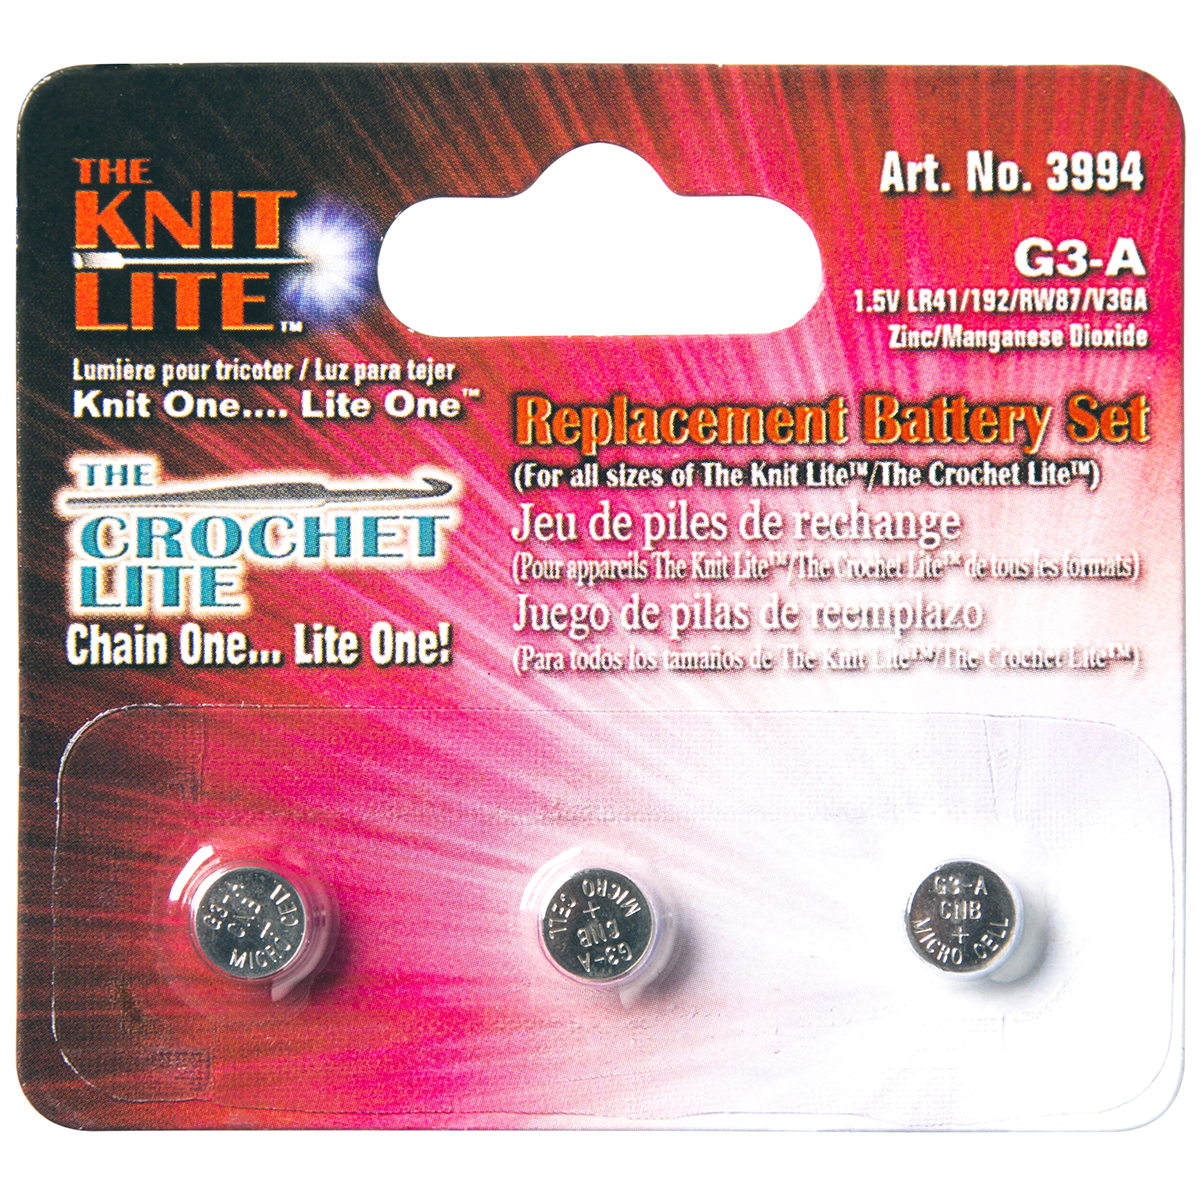 Cornerstone Products 3994 Crochet Lite Replacement Battery, 3-Pack Multi-Colored